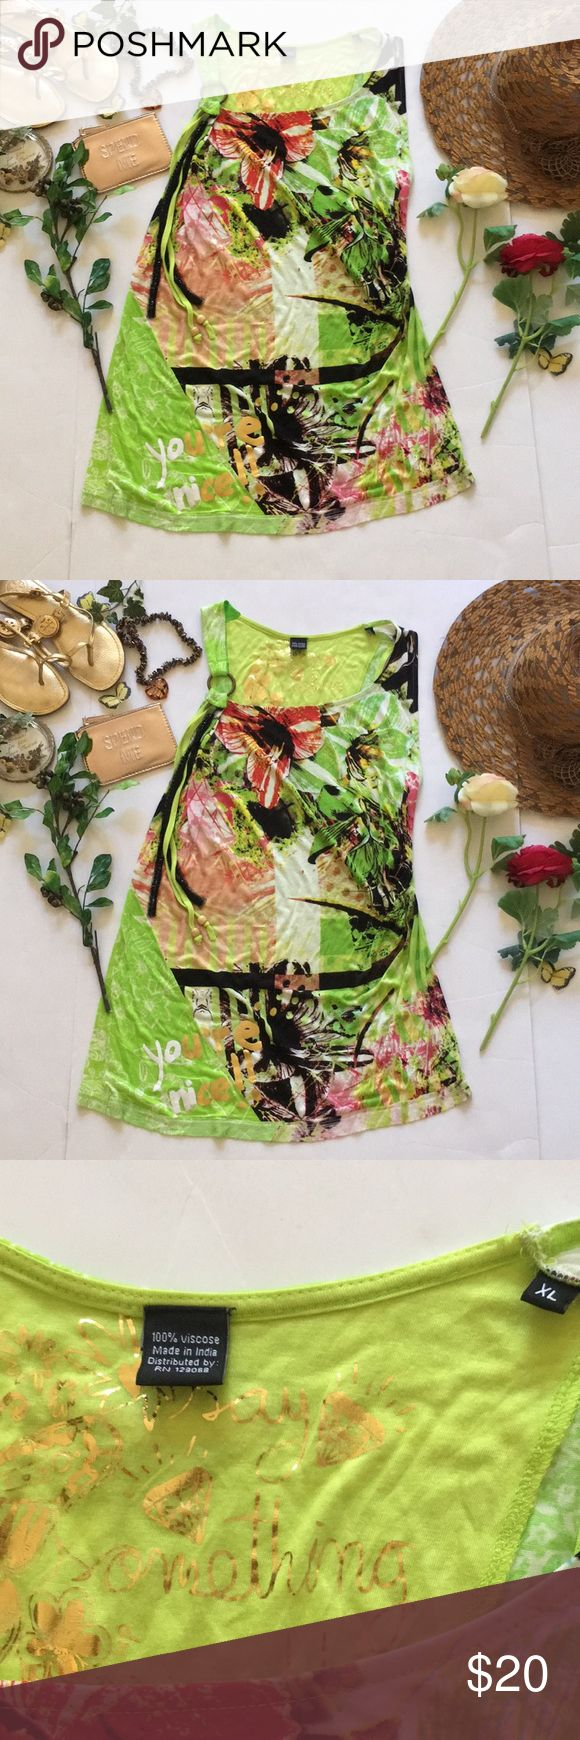 ❤Desigual Top❤ ❤In good used condition sleeveless top by Desigual in size XL❤shows minor sign of wear such as slight pilling❤Material is stretchy❤Please see all photos❤ Desigual Tops